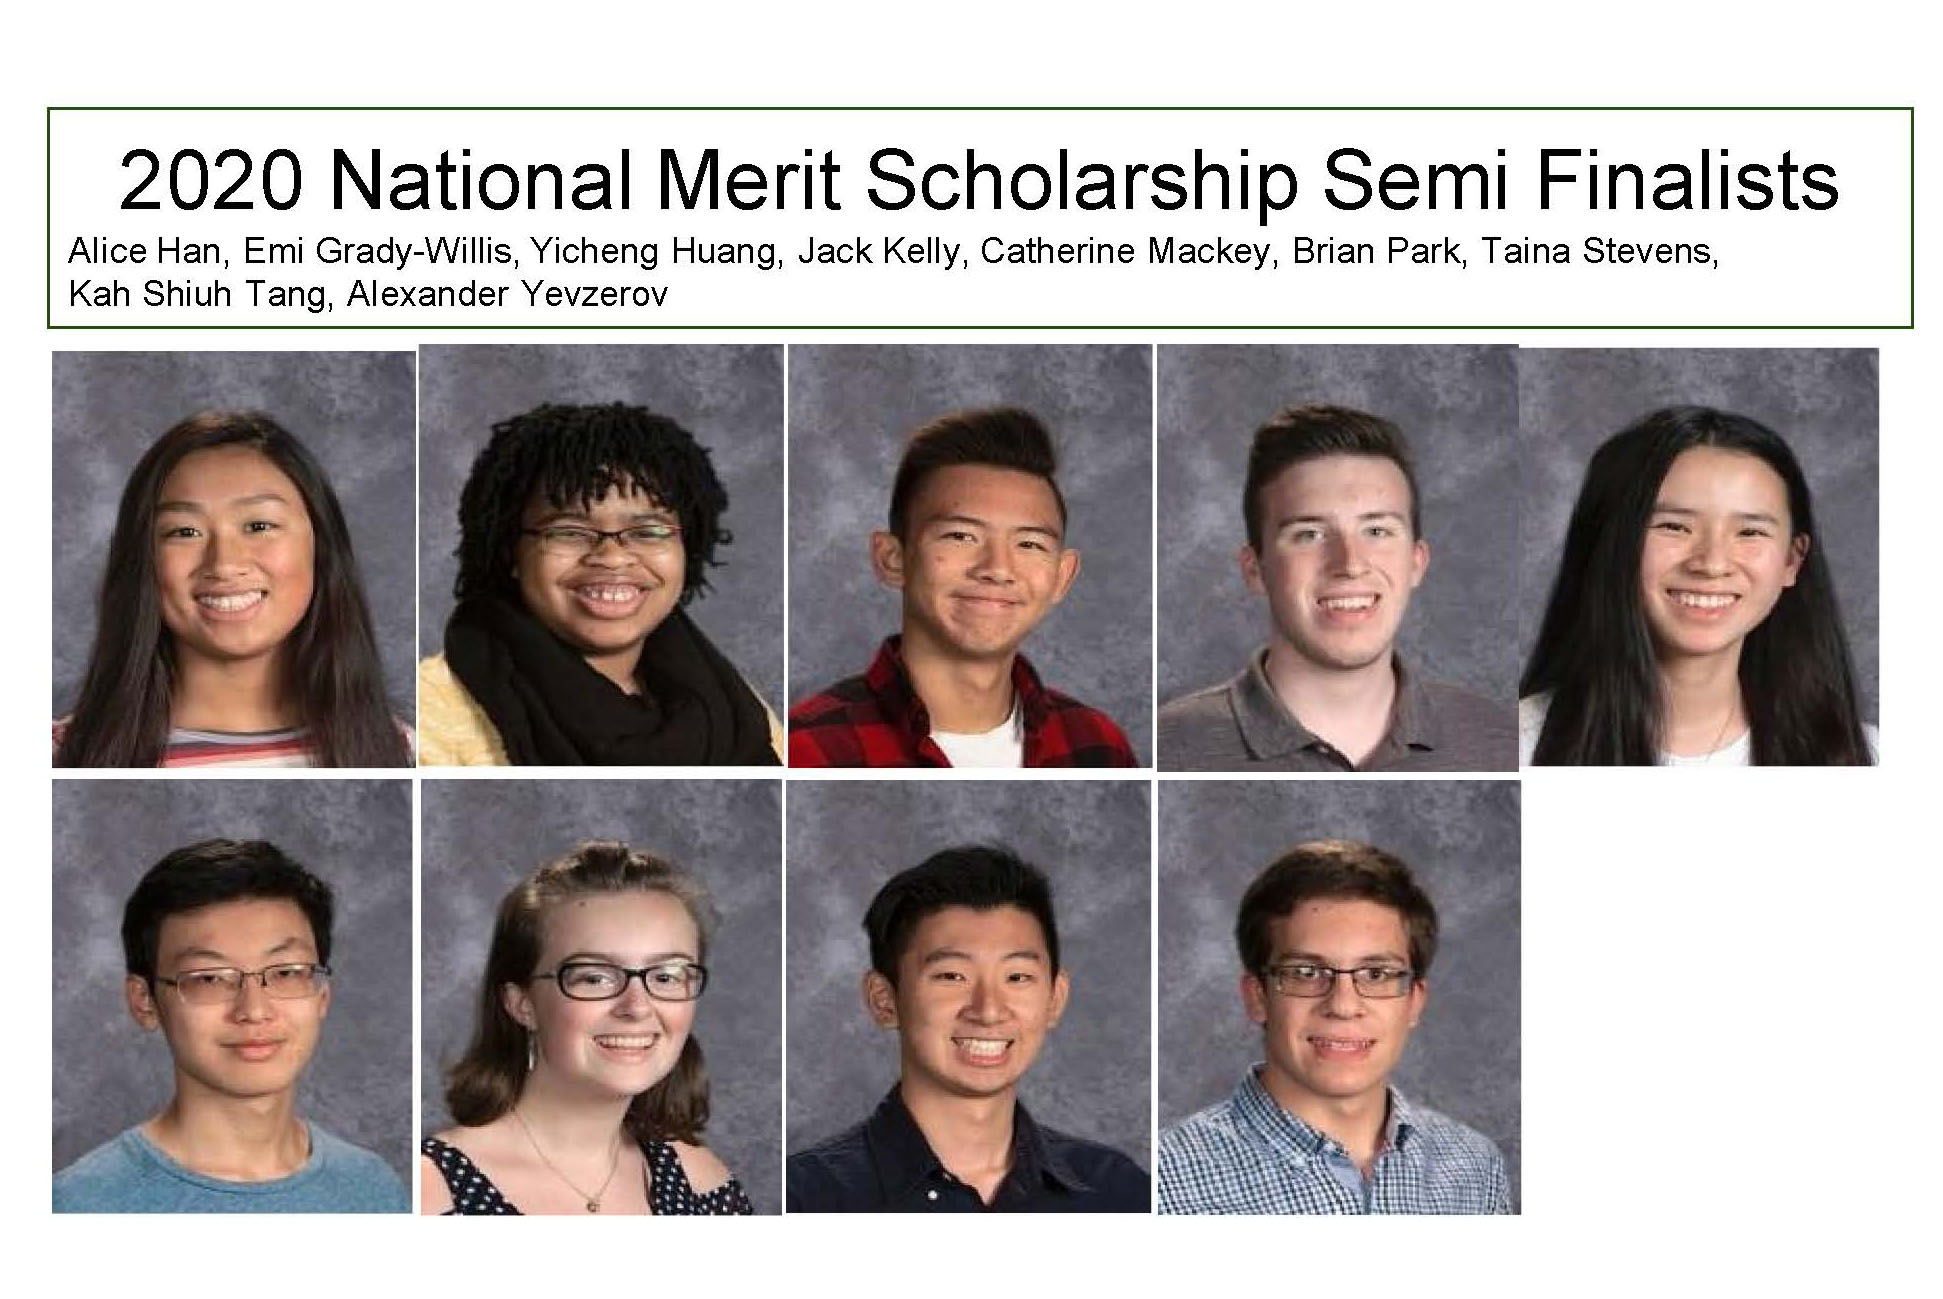 Yearbook photos of semifinalists